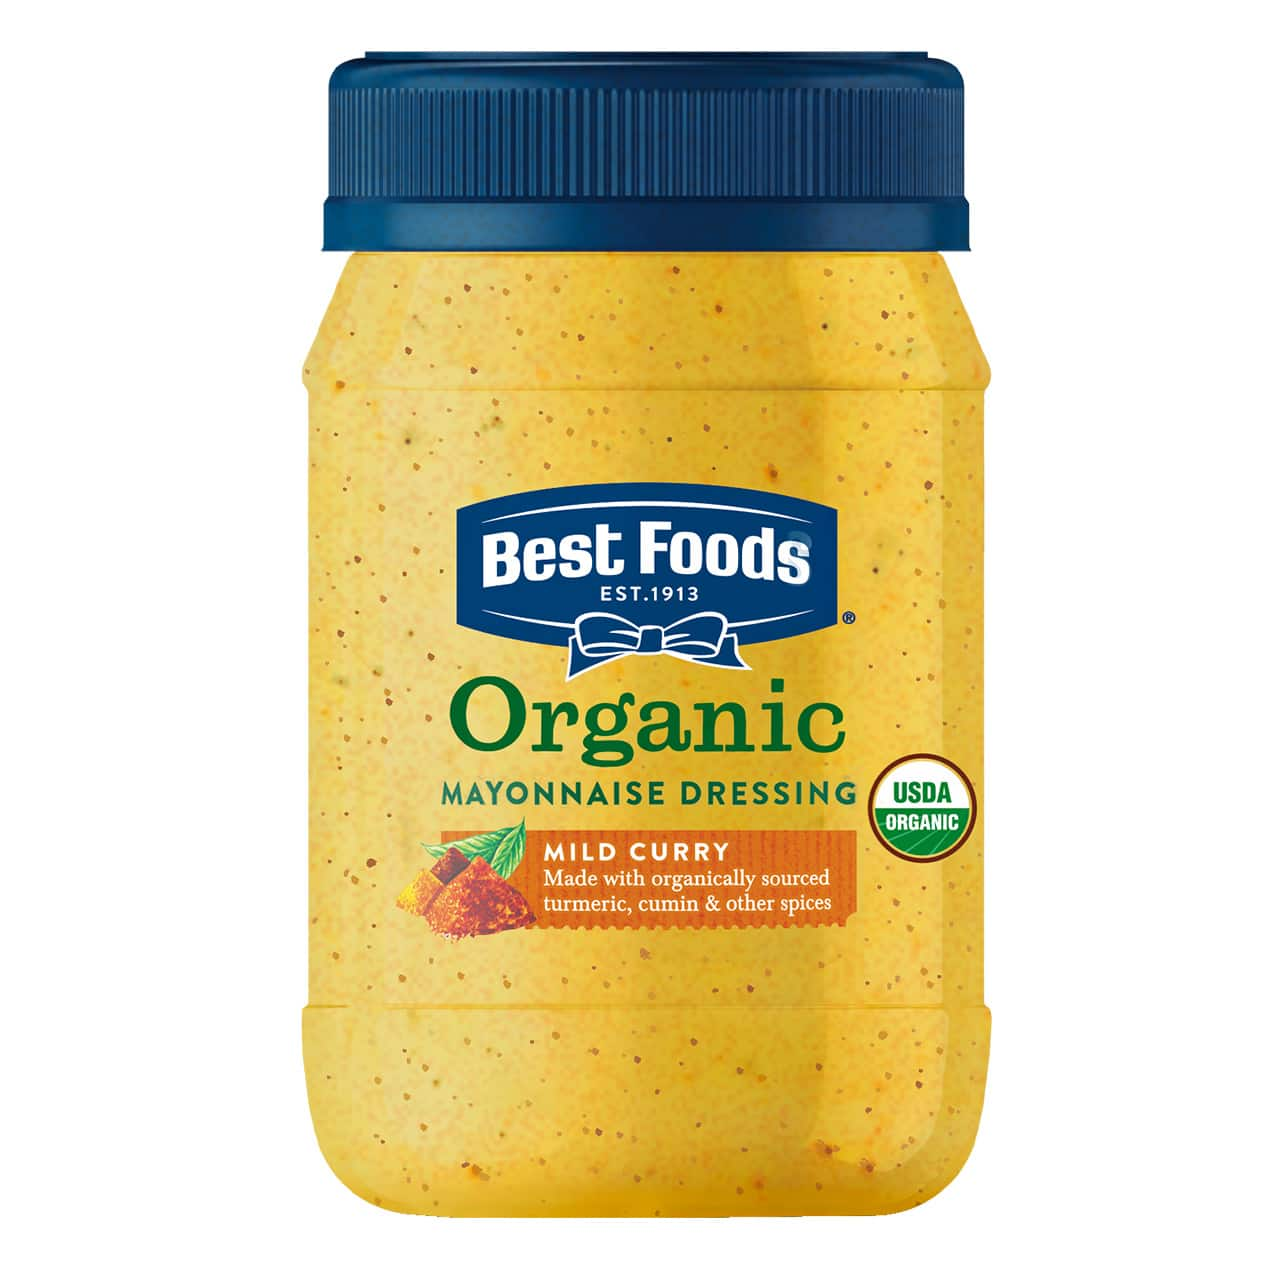 Organic Mild Curry Mayonnaise Dressing